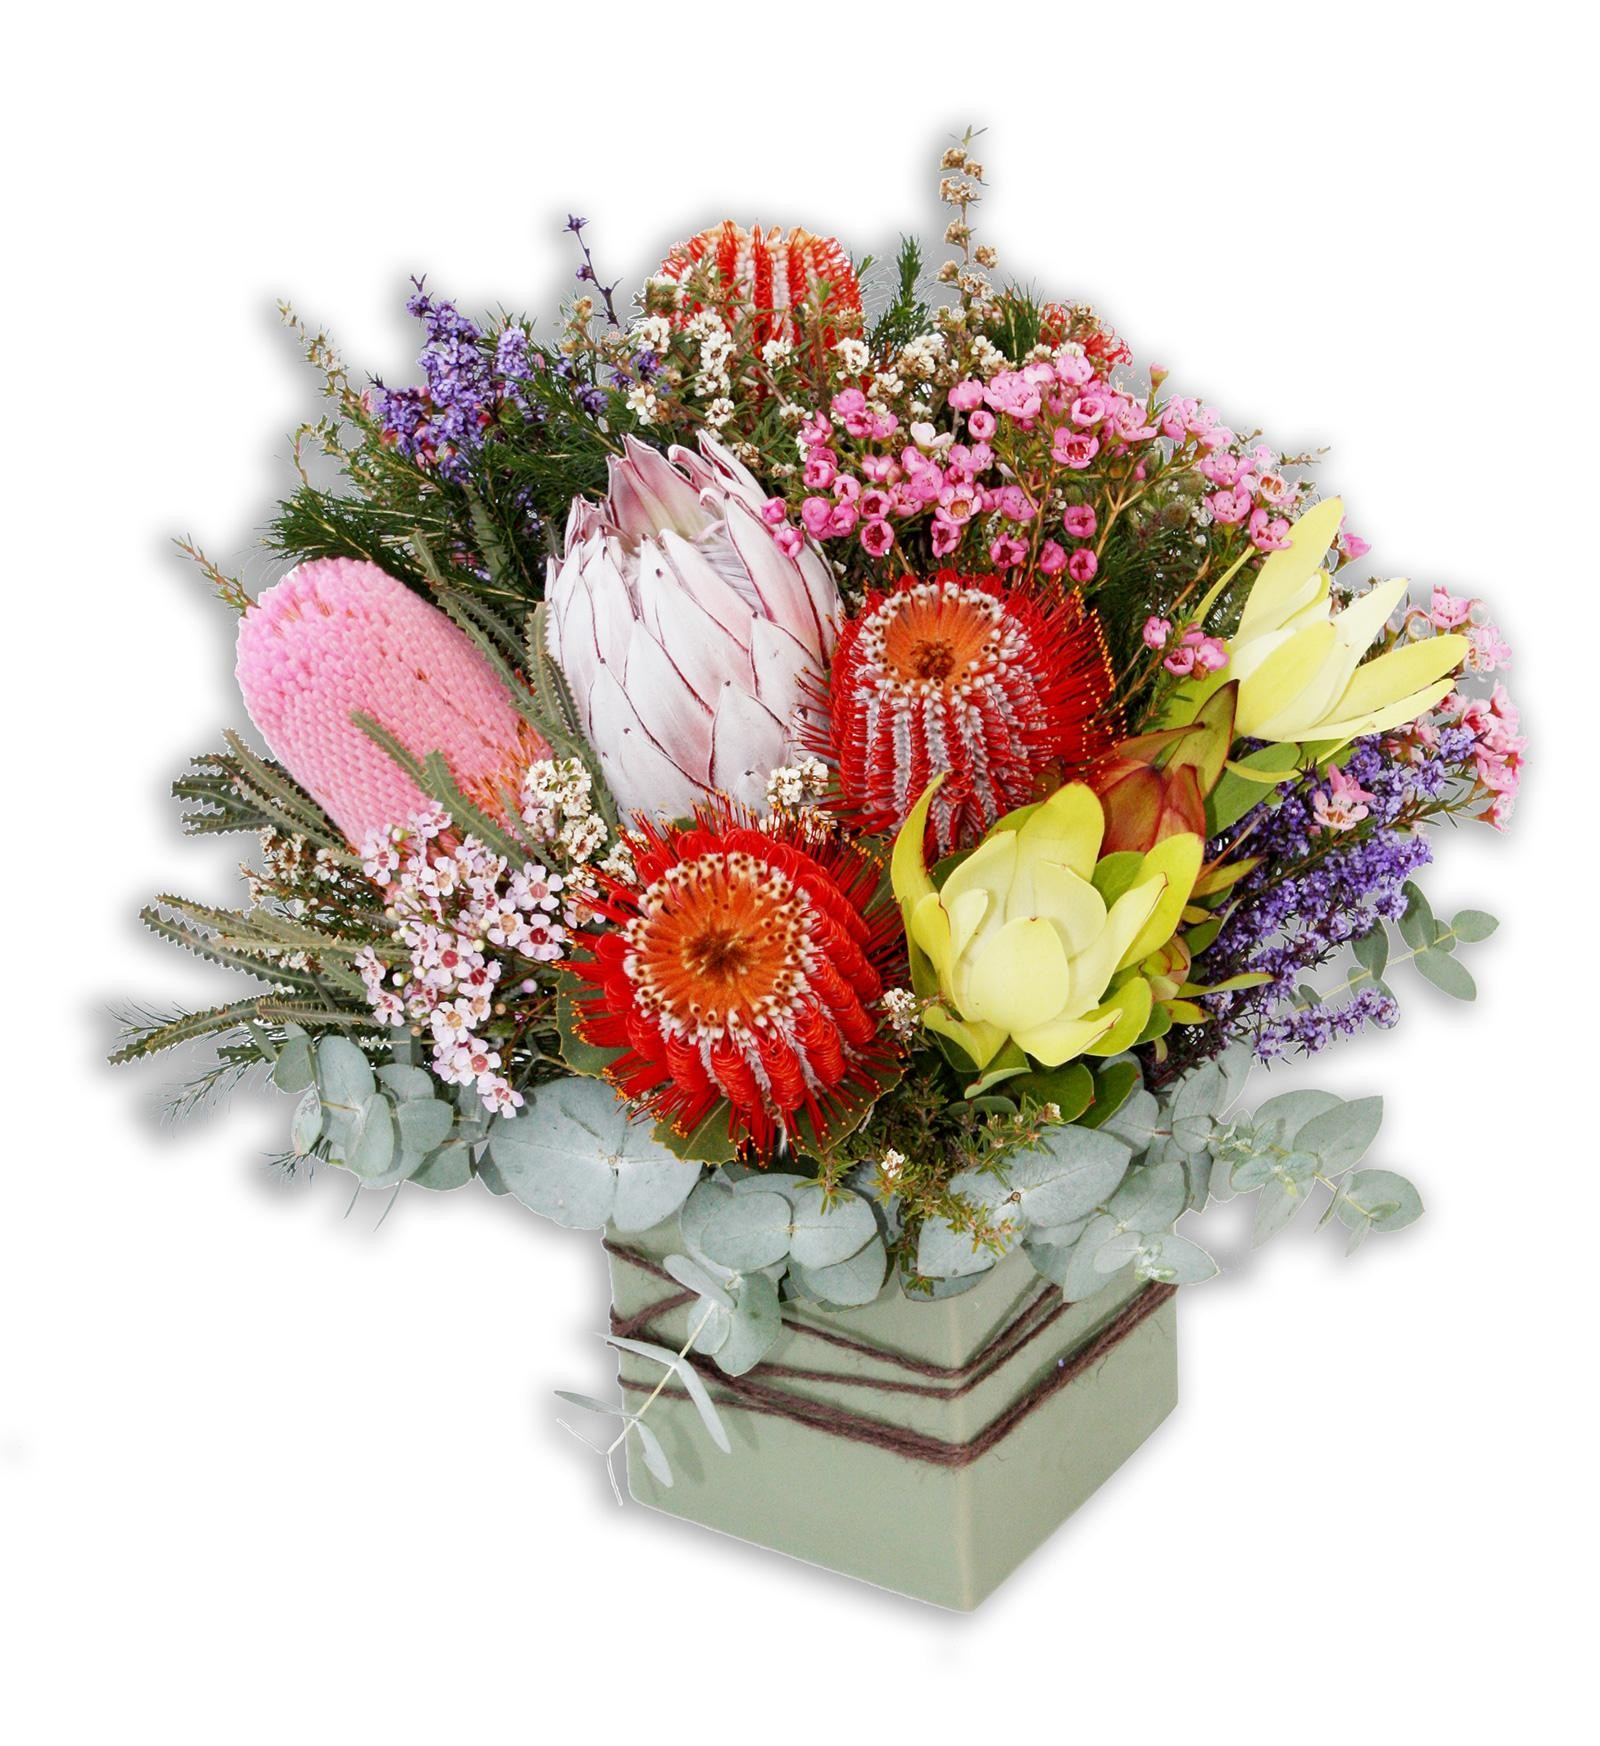 Australian Native Flowers Perth Native Flowers Perth Delivery